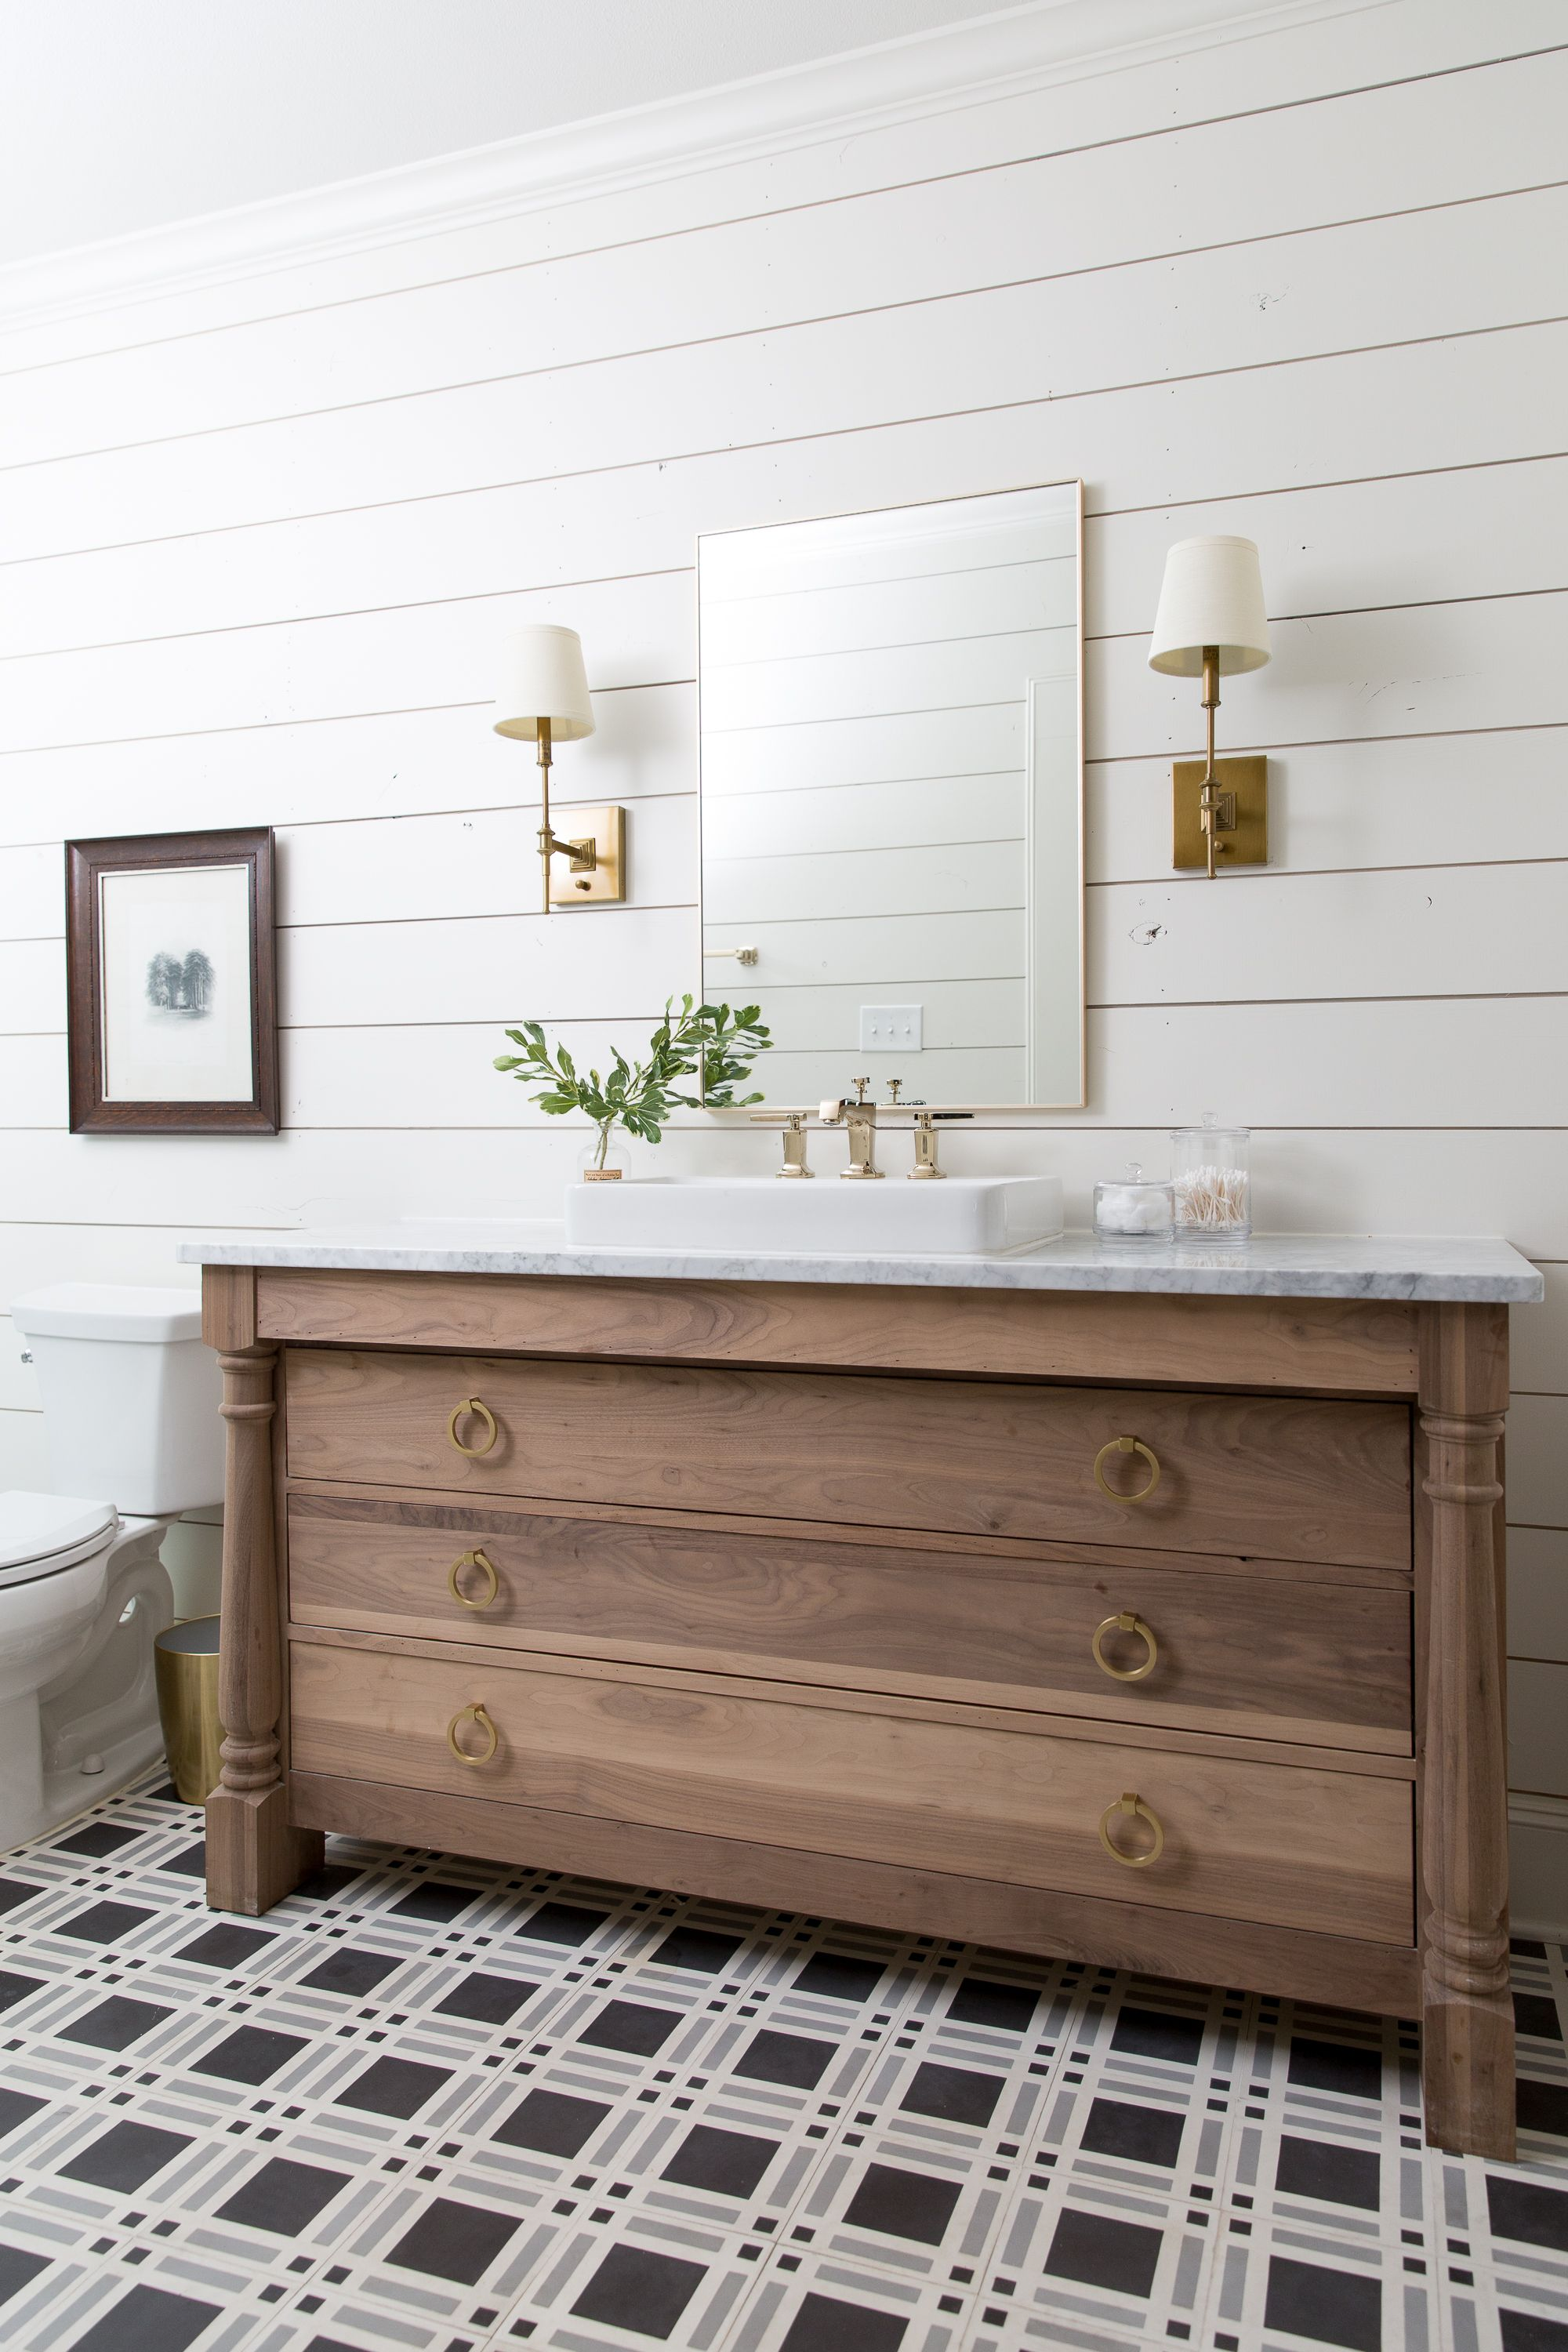 Stay Vacation Rentals Designed By Joanna Gaines In 2020 Bathroom Renovations Modern